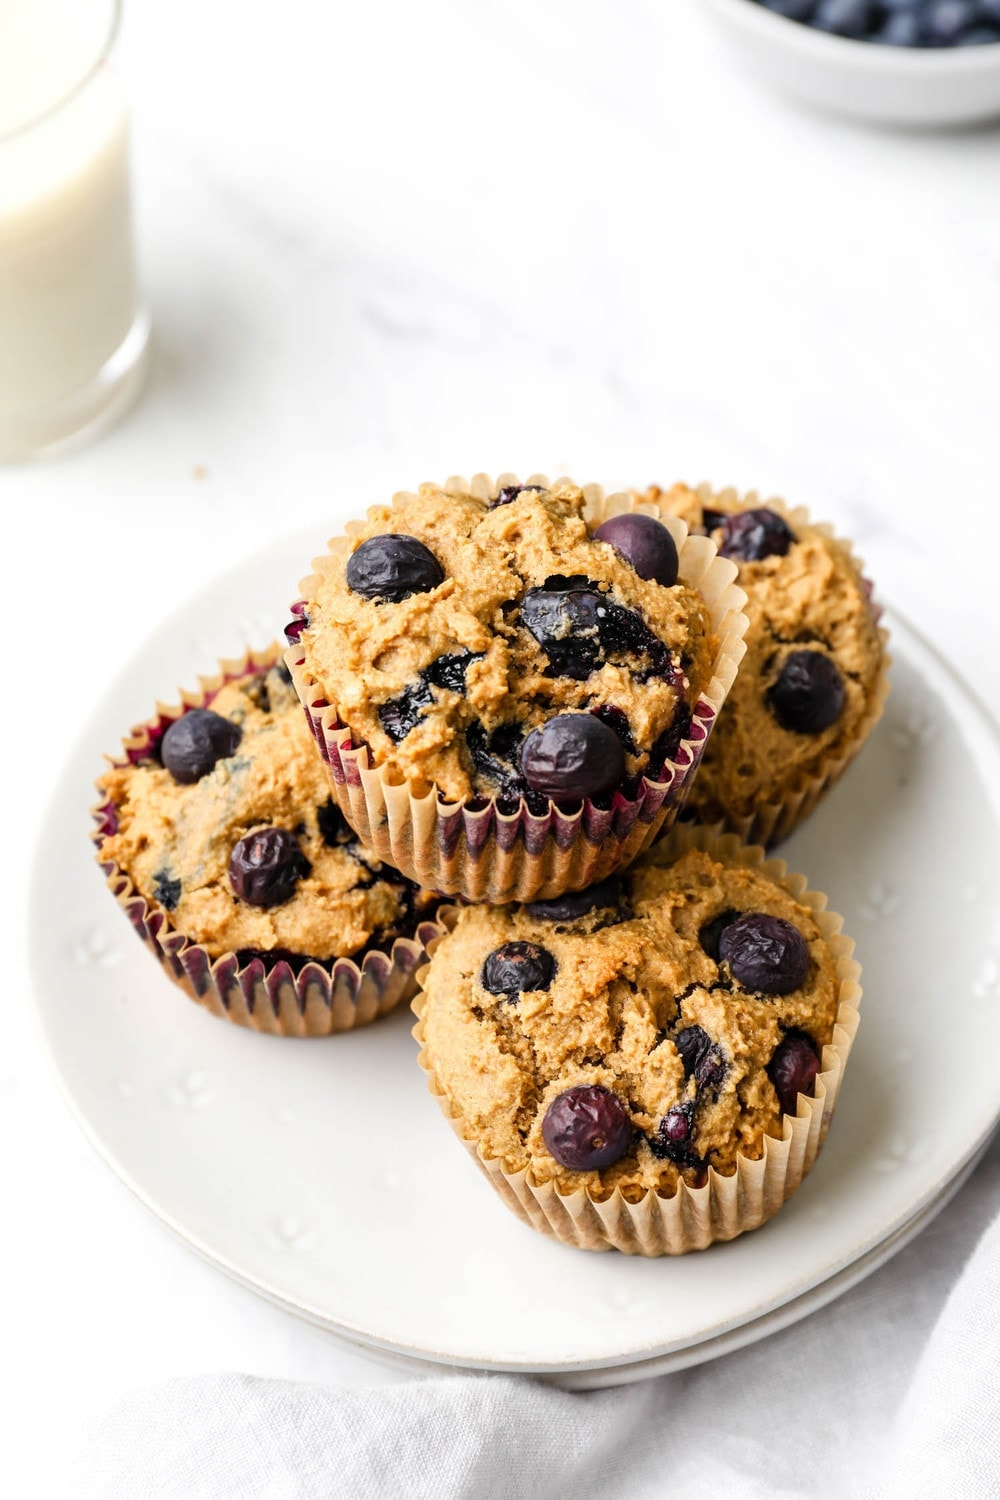 Gluten Free Blueberry Muffins stacked on a serving plate.